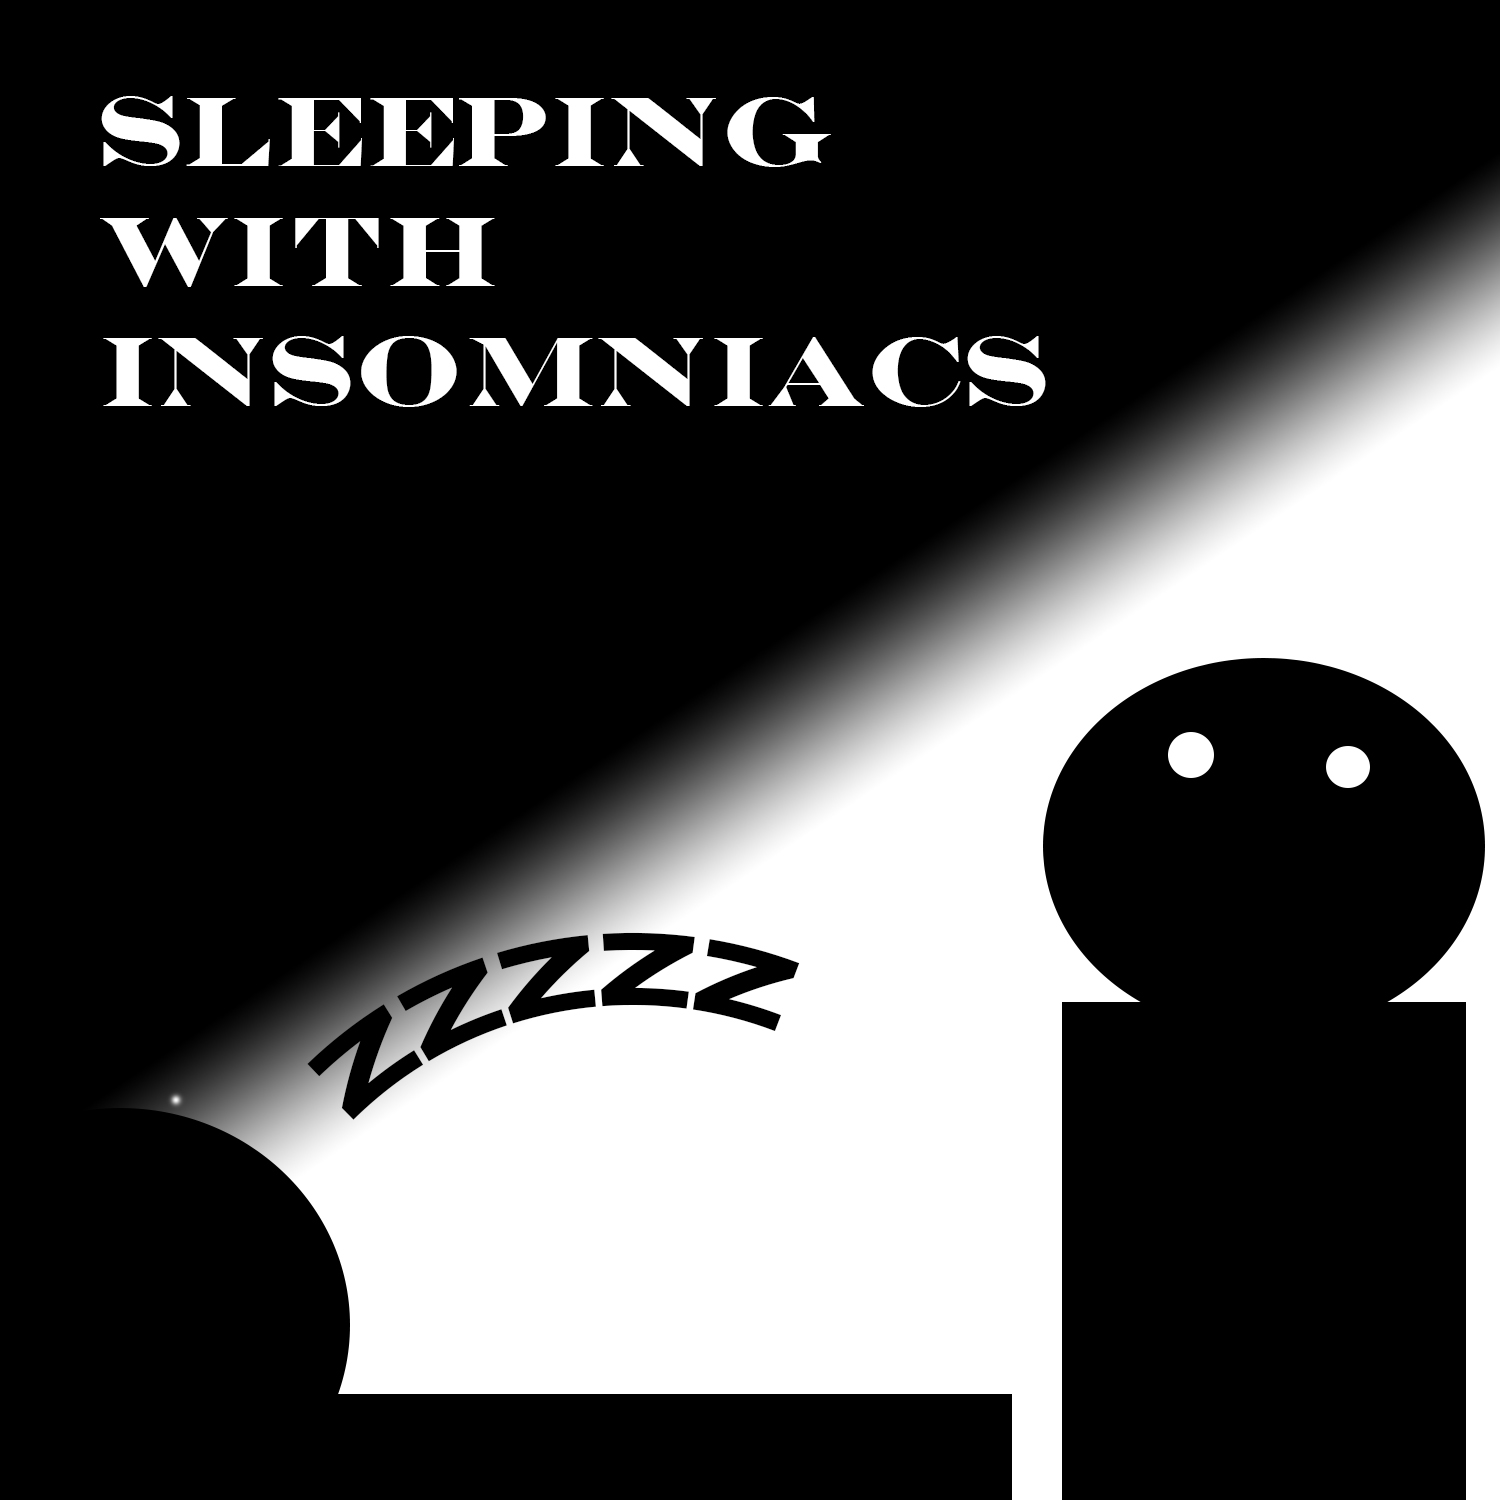 Sleeping With insomniacs - Dacespace.com